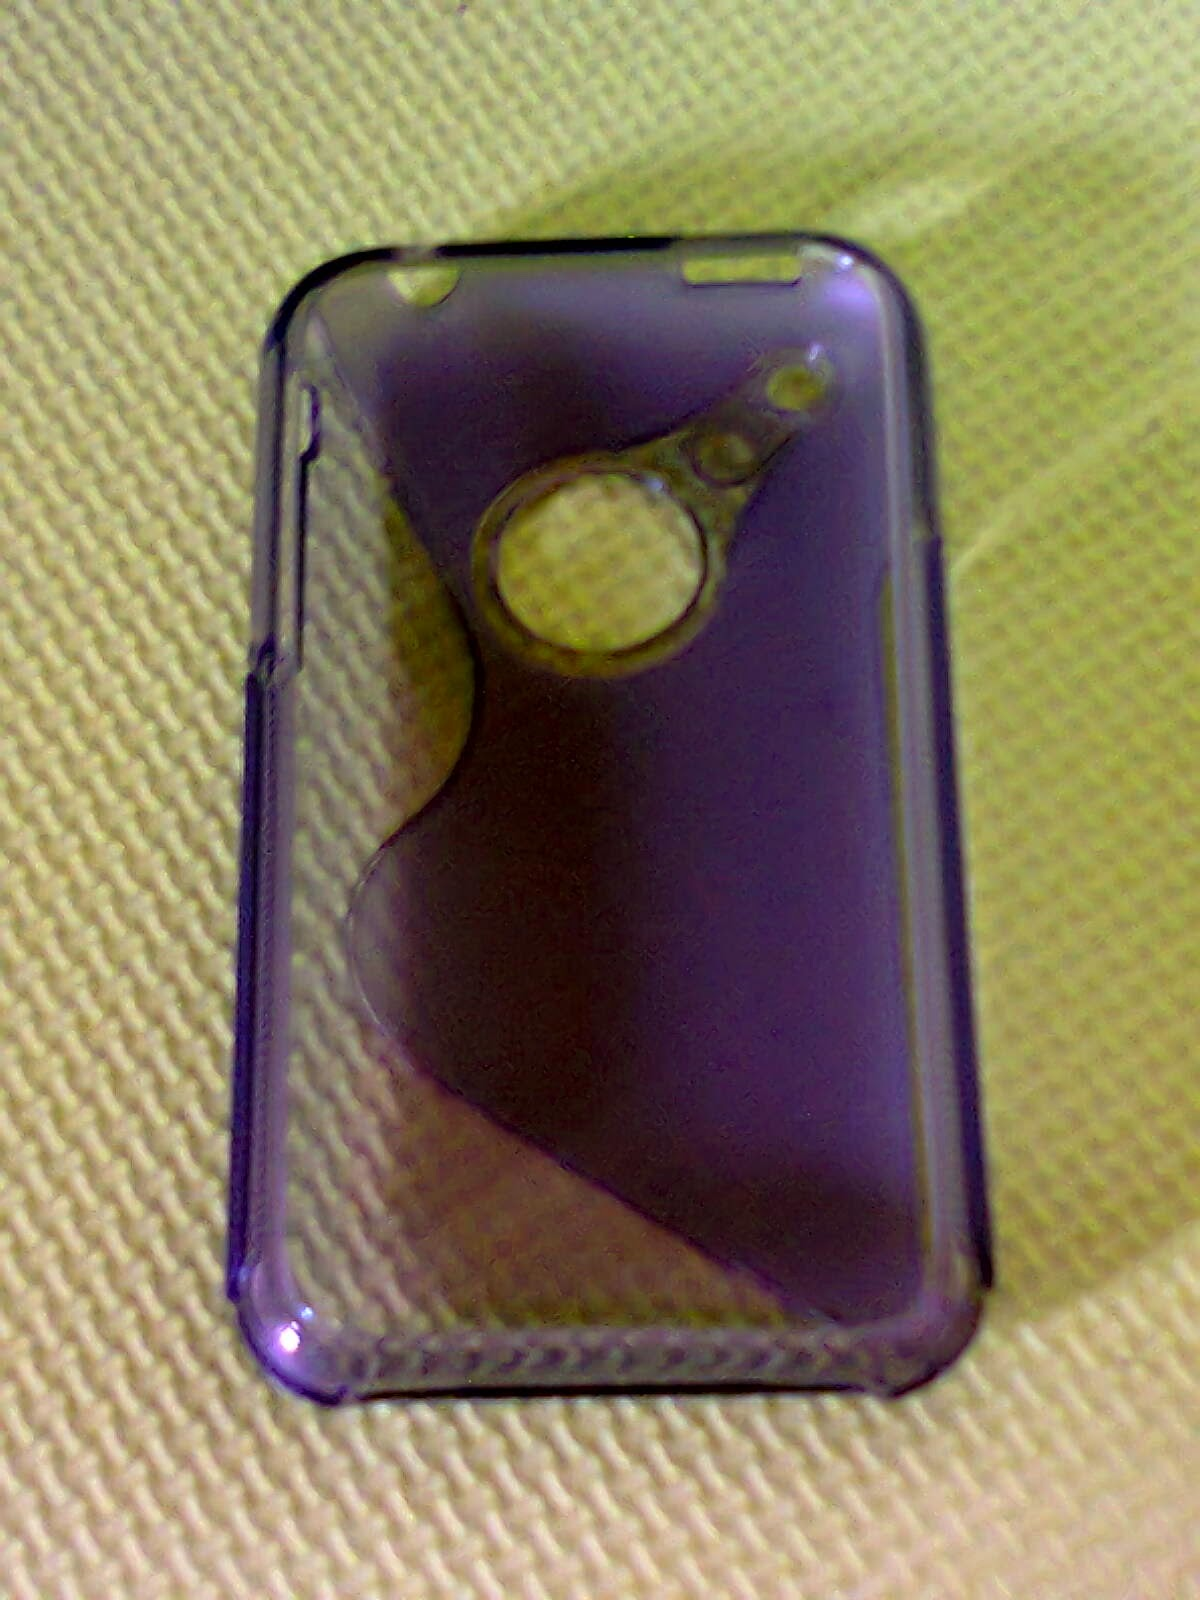 S-Curve-Soft-TPU-Jelly-Case-iPhone-3G-3GS